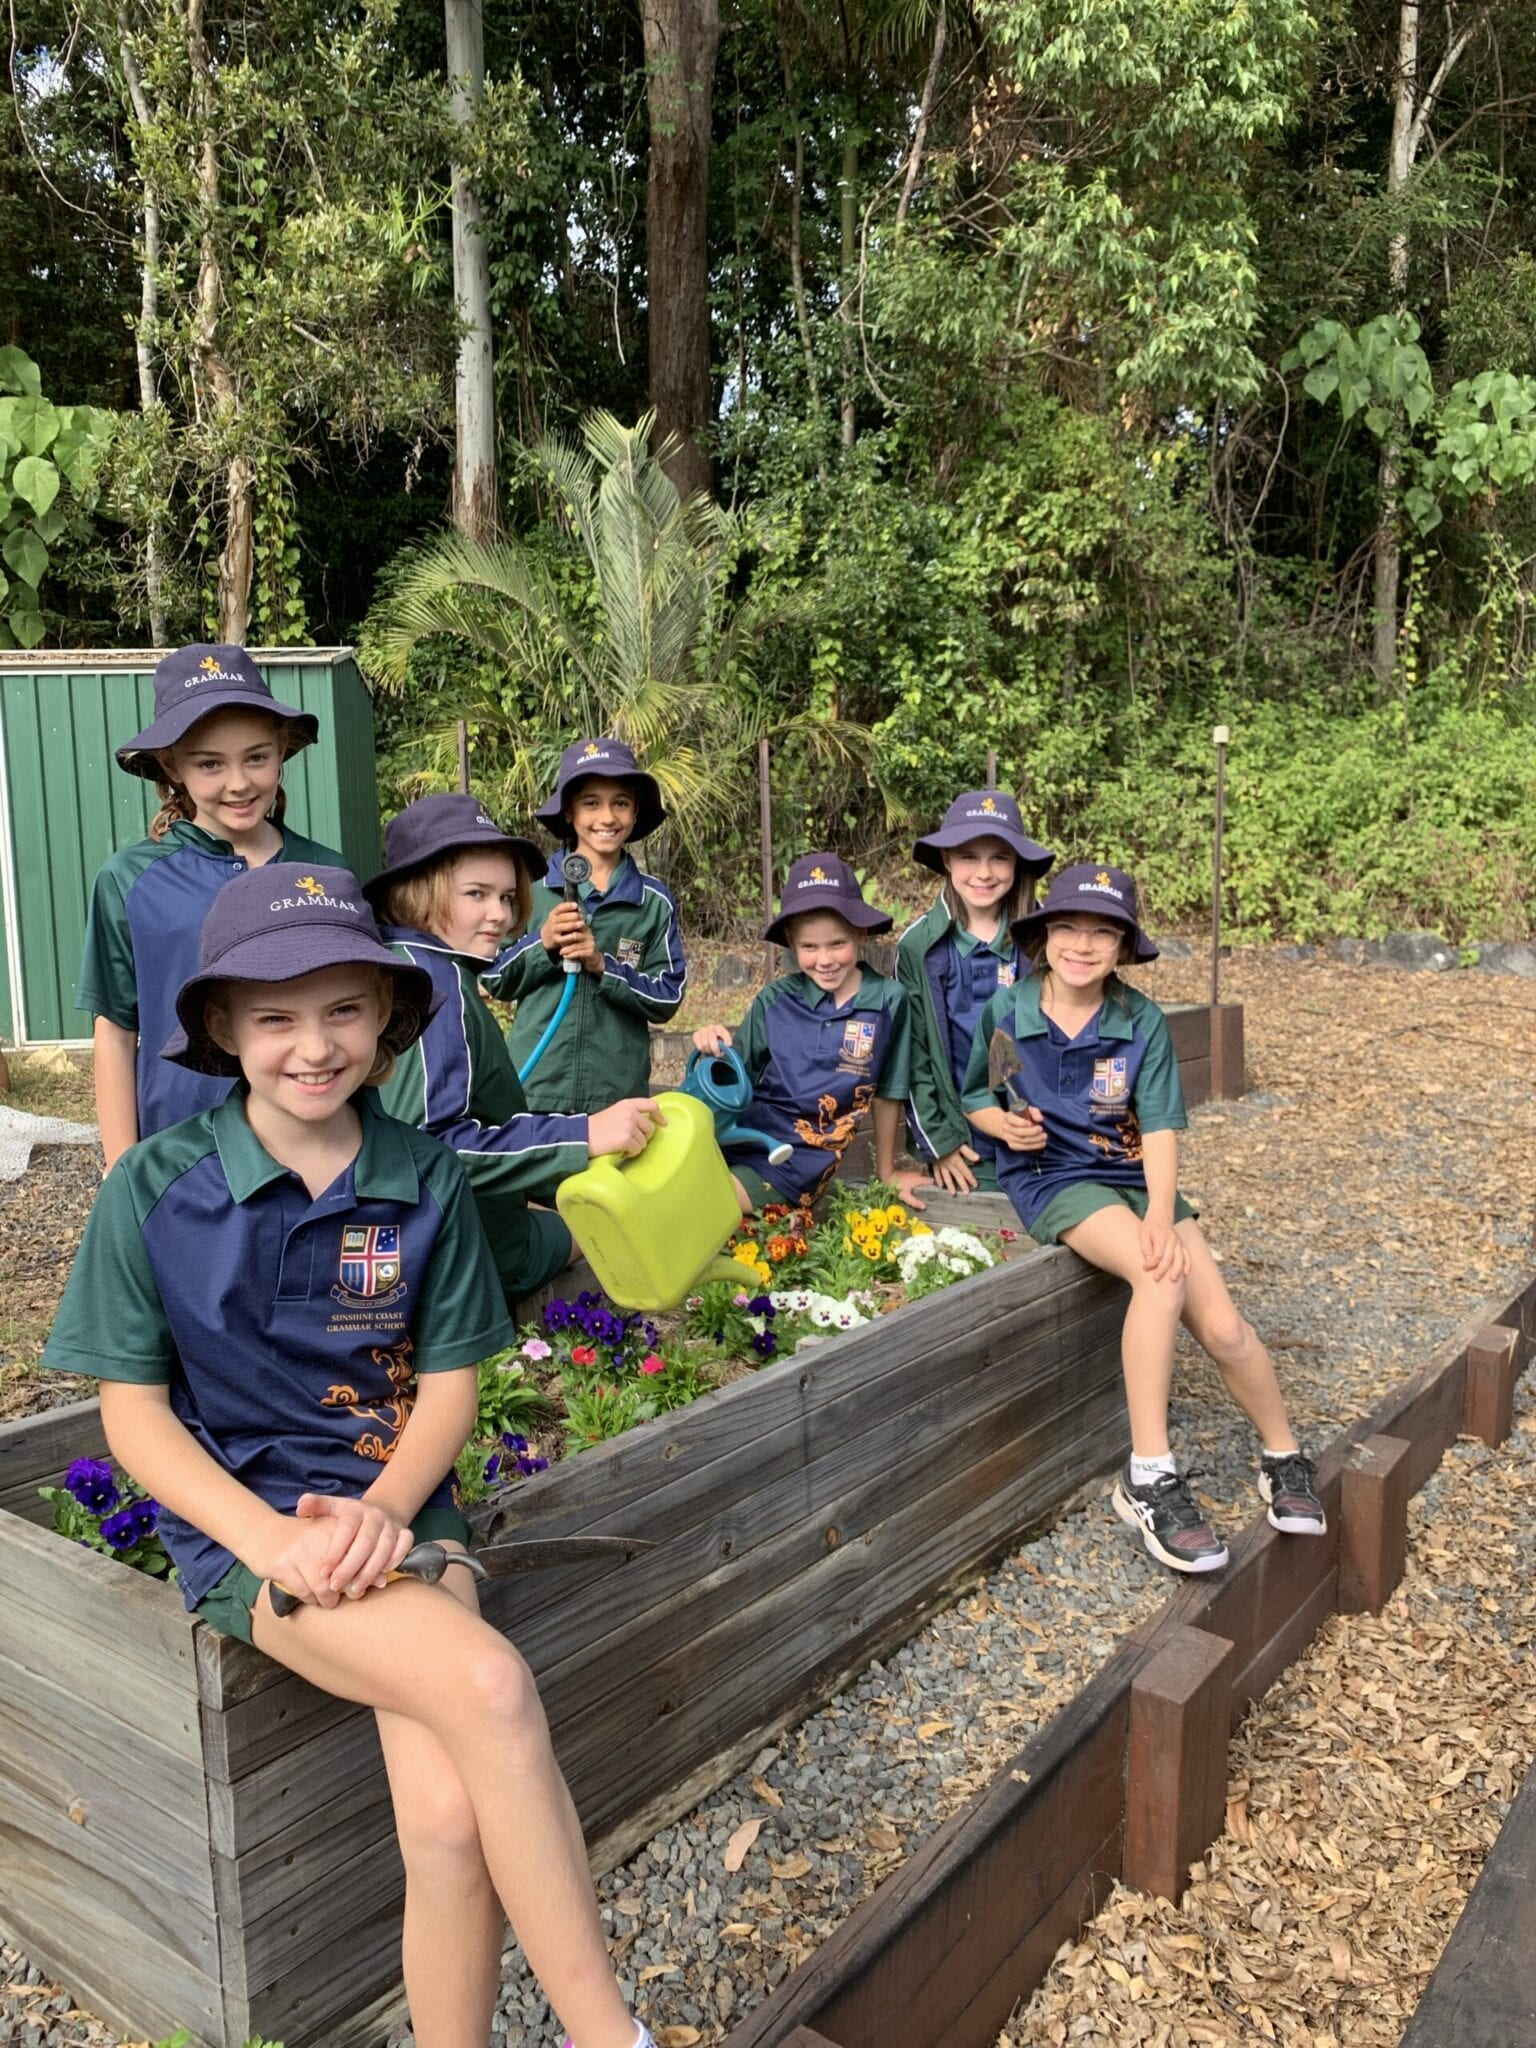 Green thumbs set to make a difference